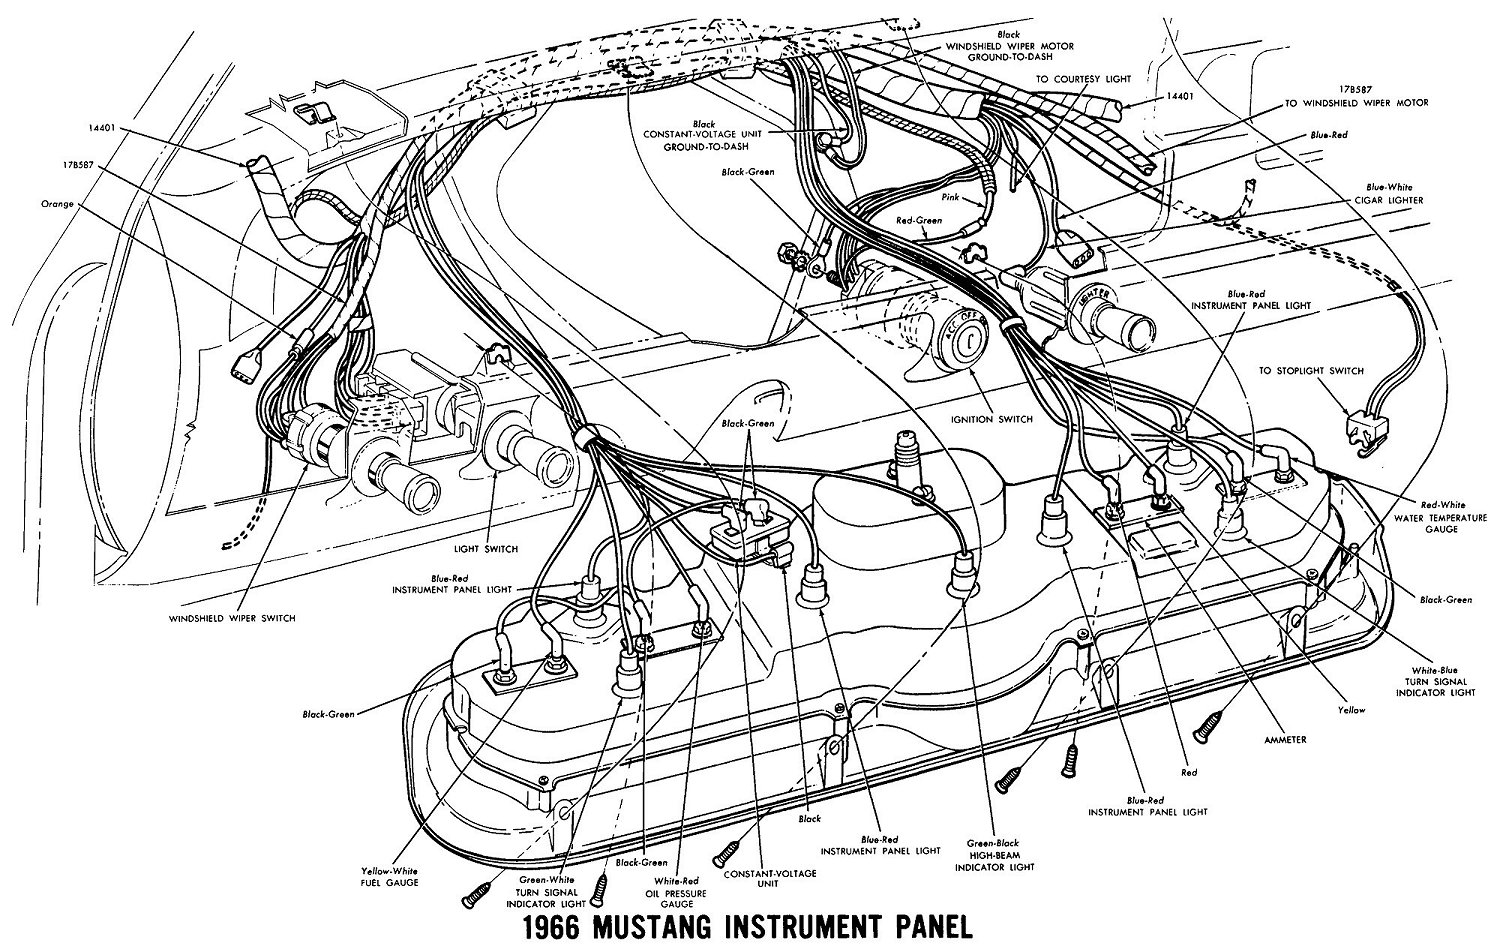 66instr 1966 mustang wiring diagrams average joe restoration 1969 mustang wiring diagram at bayanpartner.co